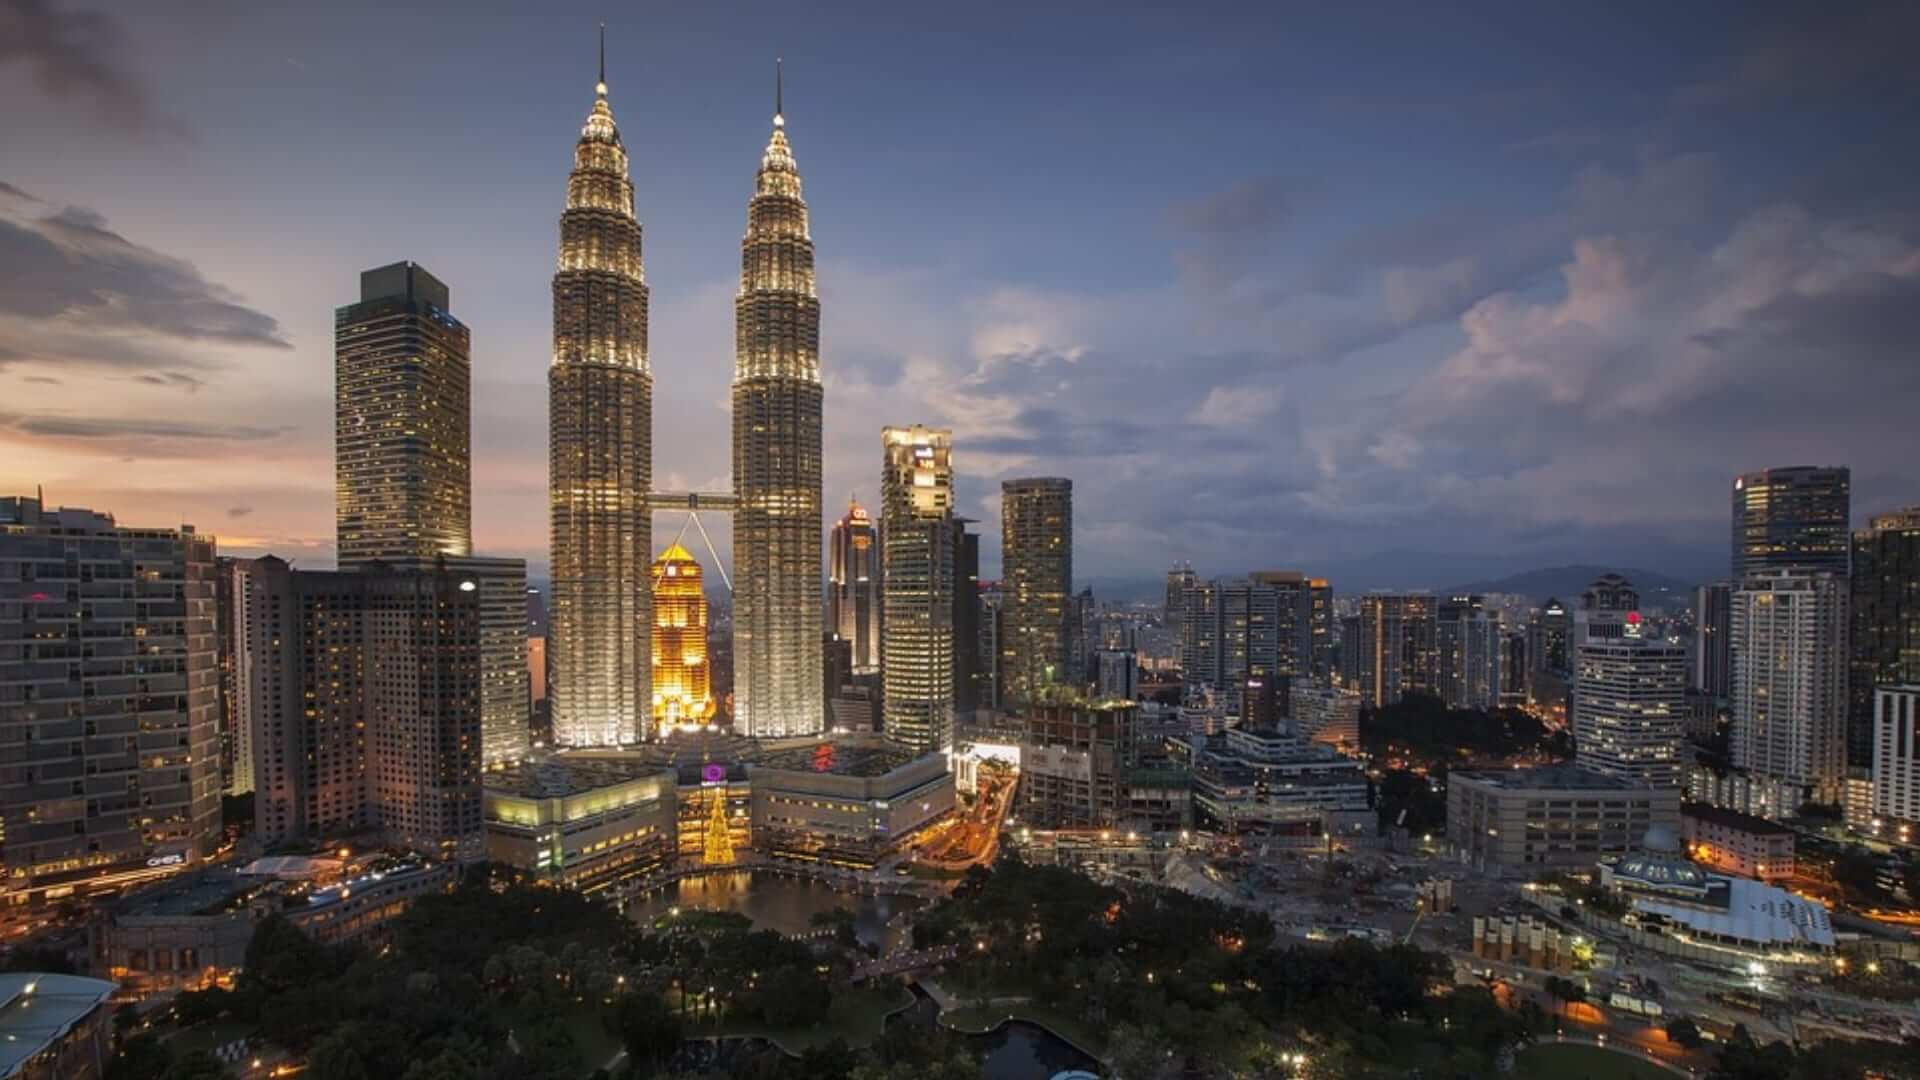 High buildings are illuminated during the evening in Kuala Lumpur.